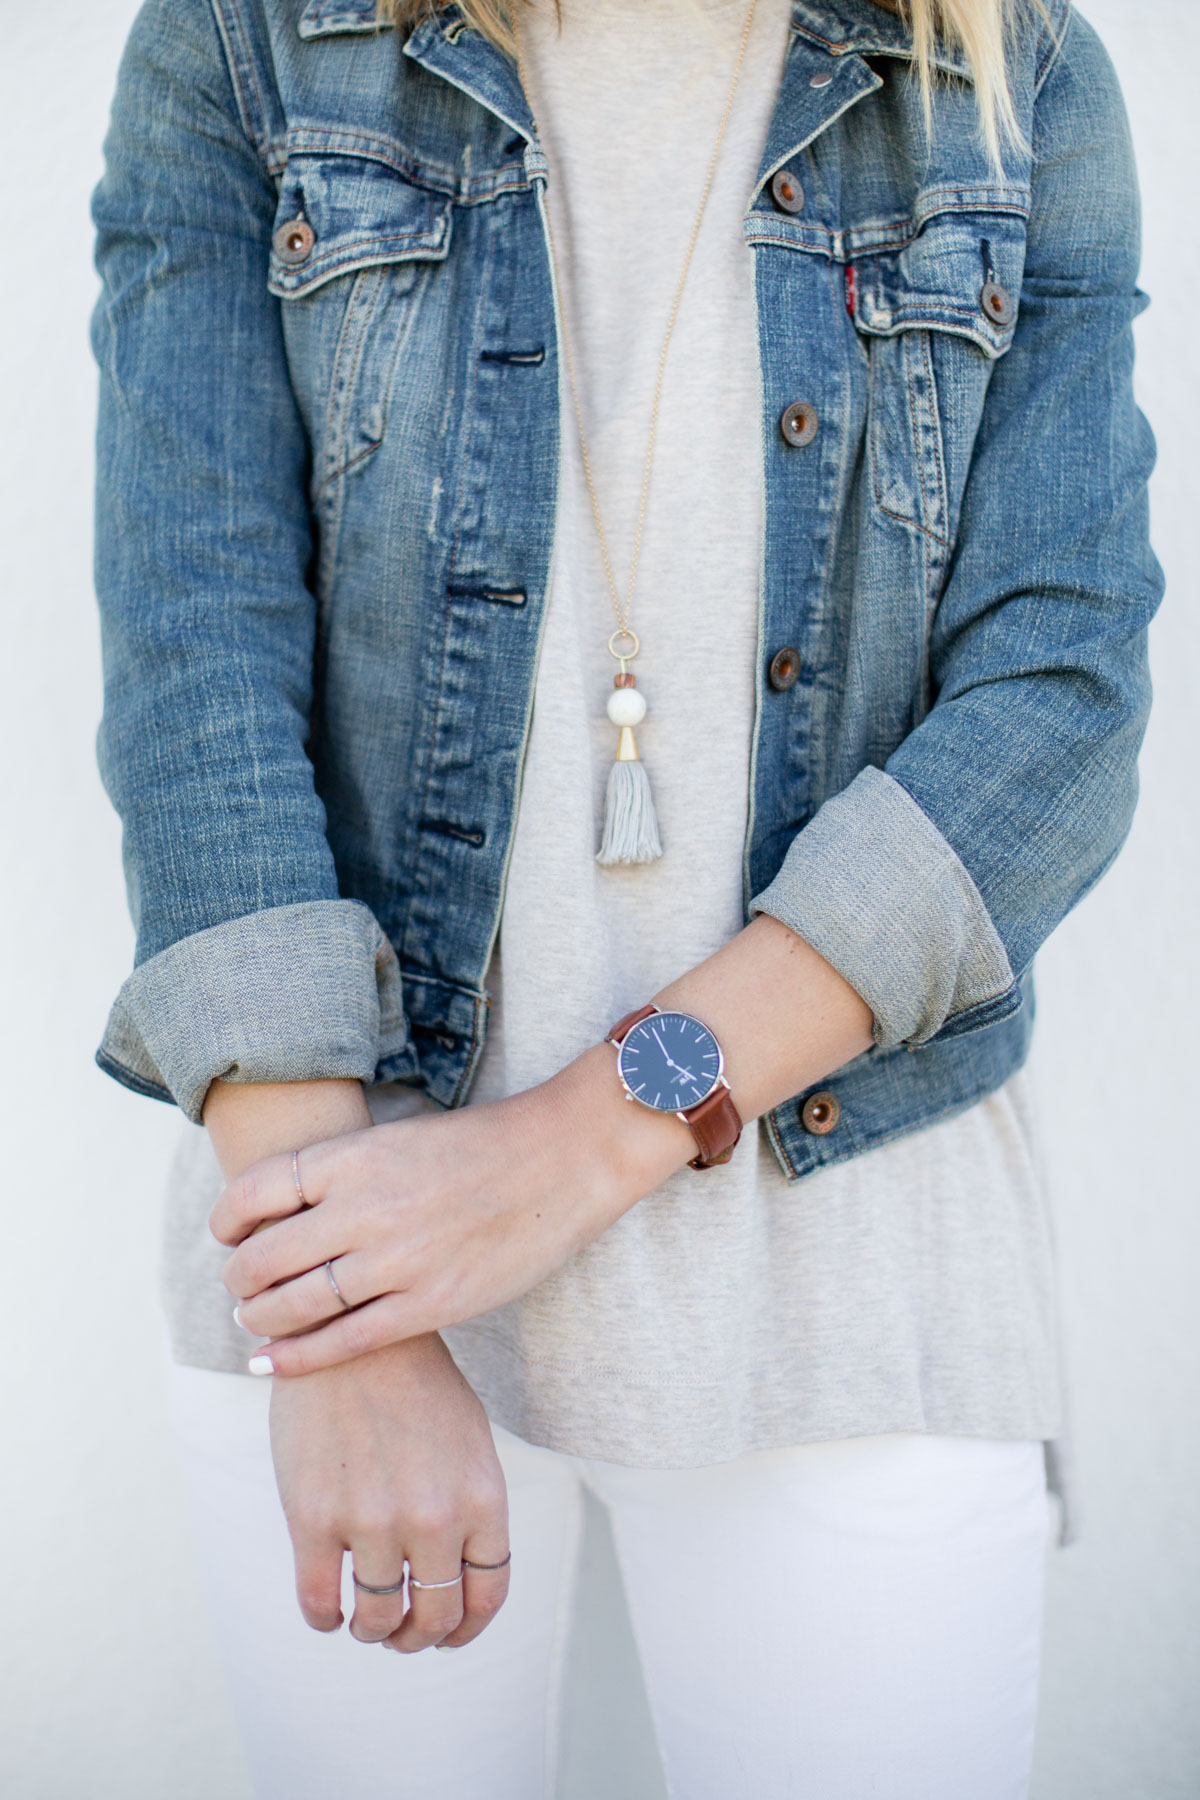 basic outfits with denim jacket and tassel necklace